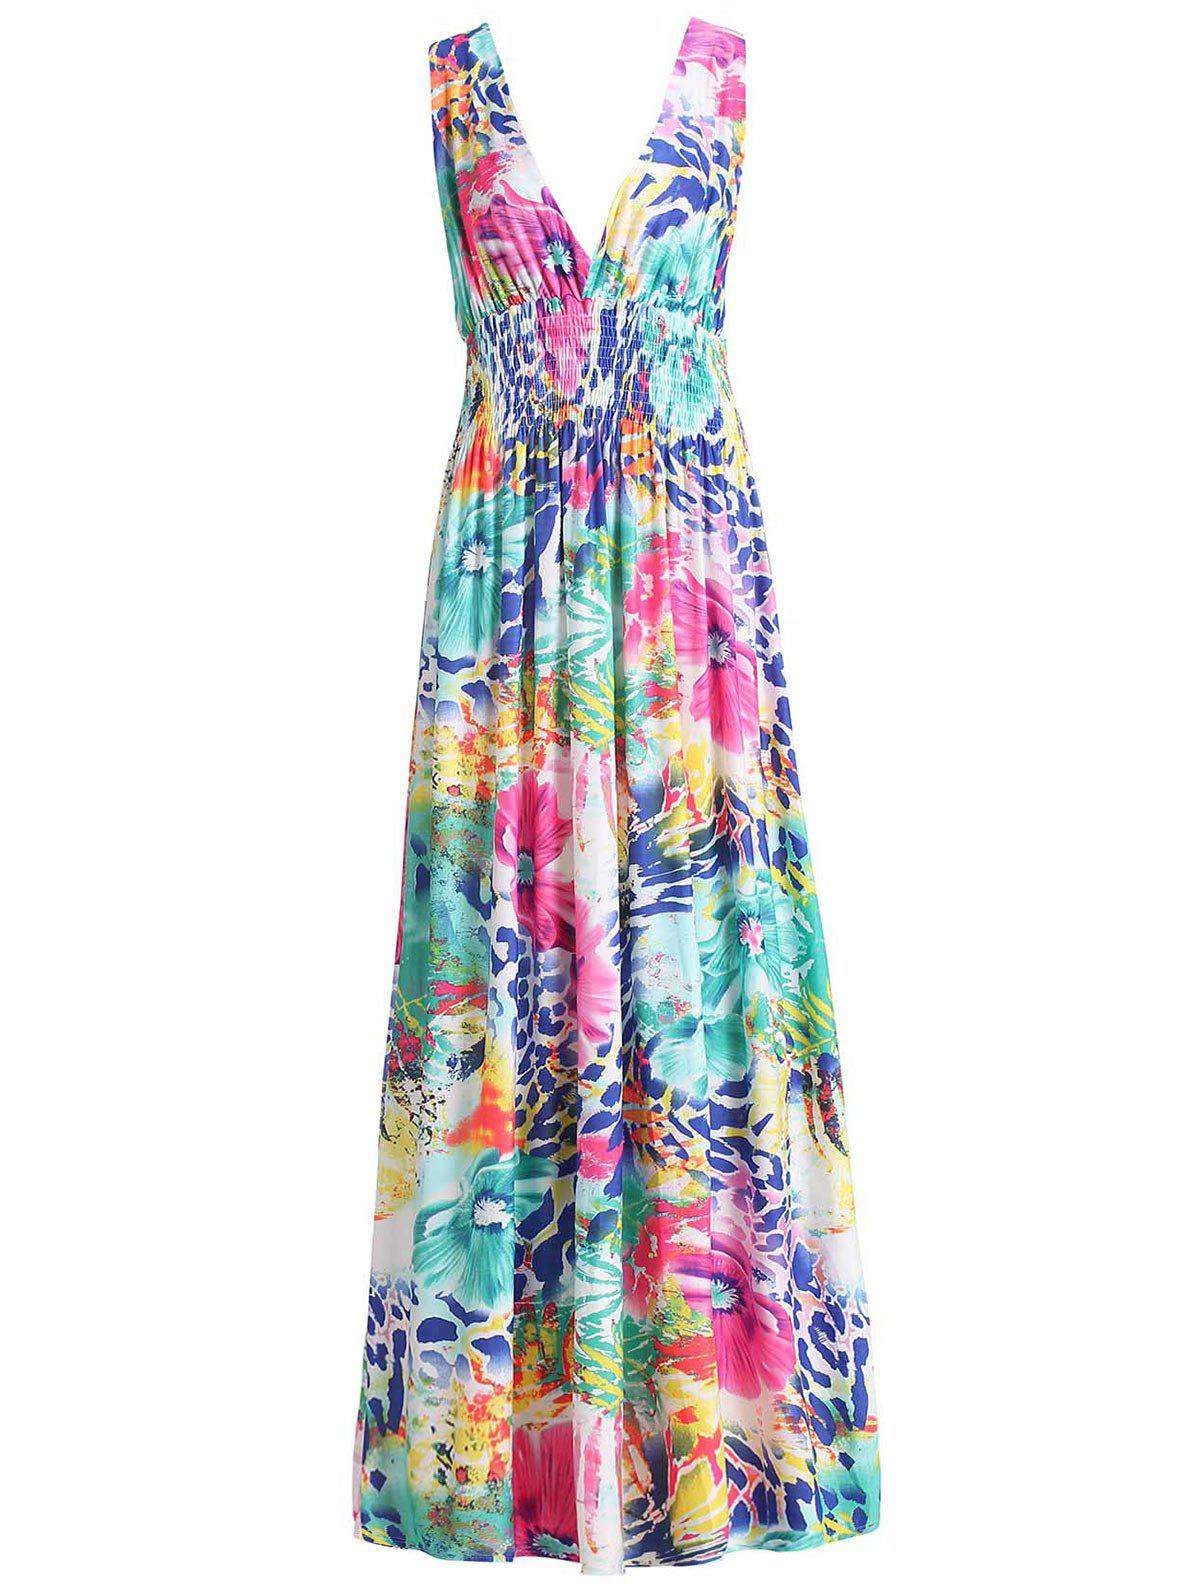 Sexy Colorful Floral Print Plunging Neck Sleeveless Dress - GREEN 2XL